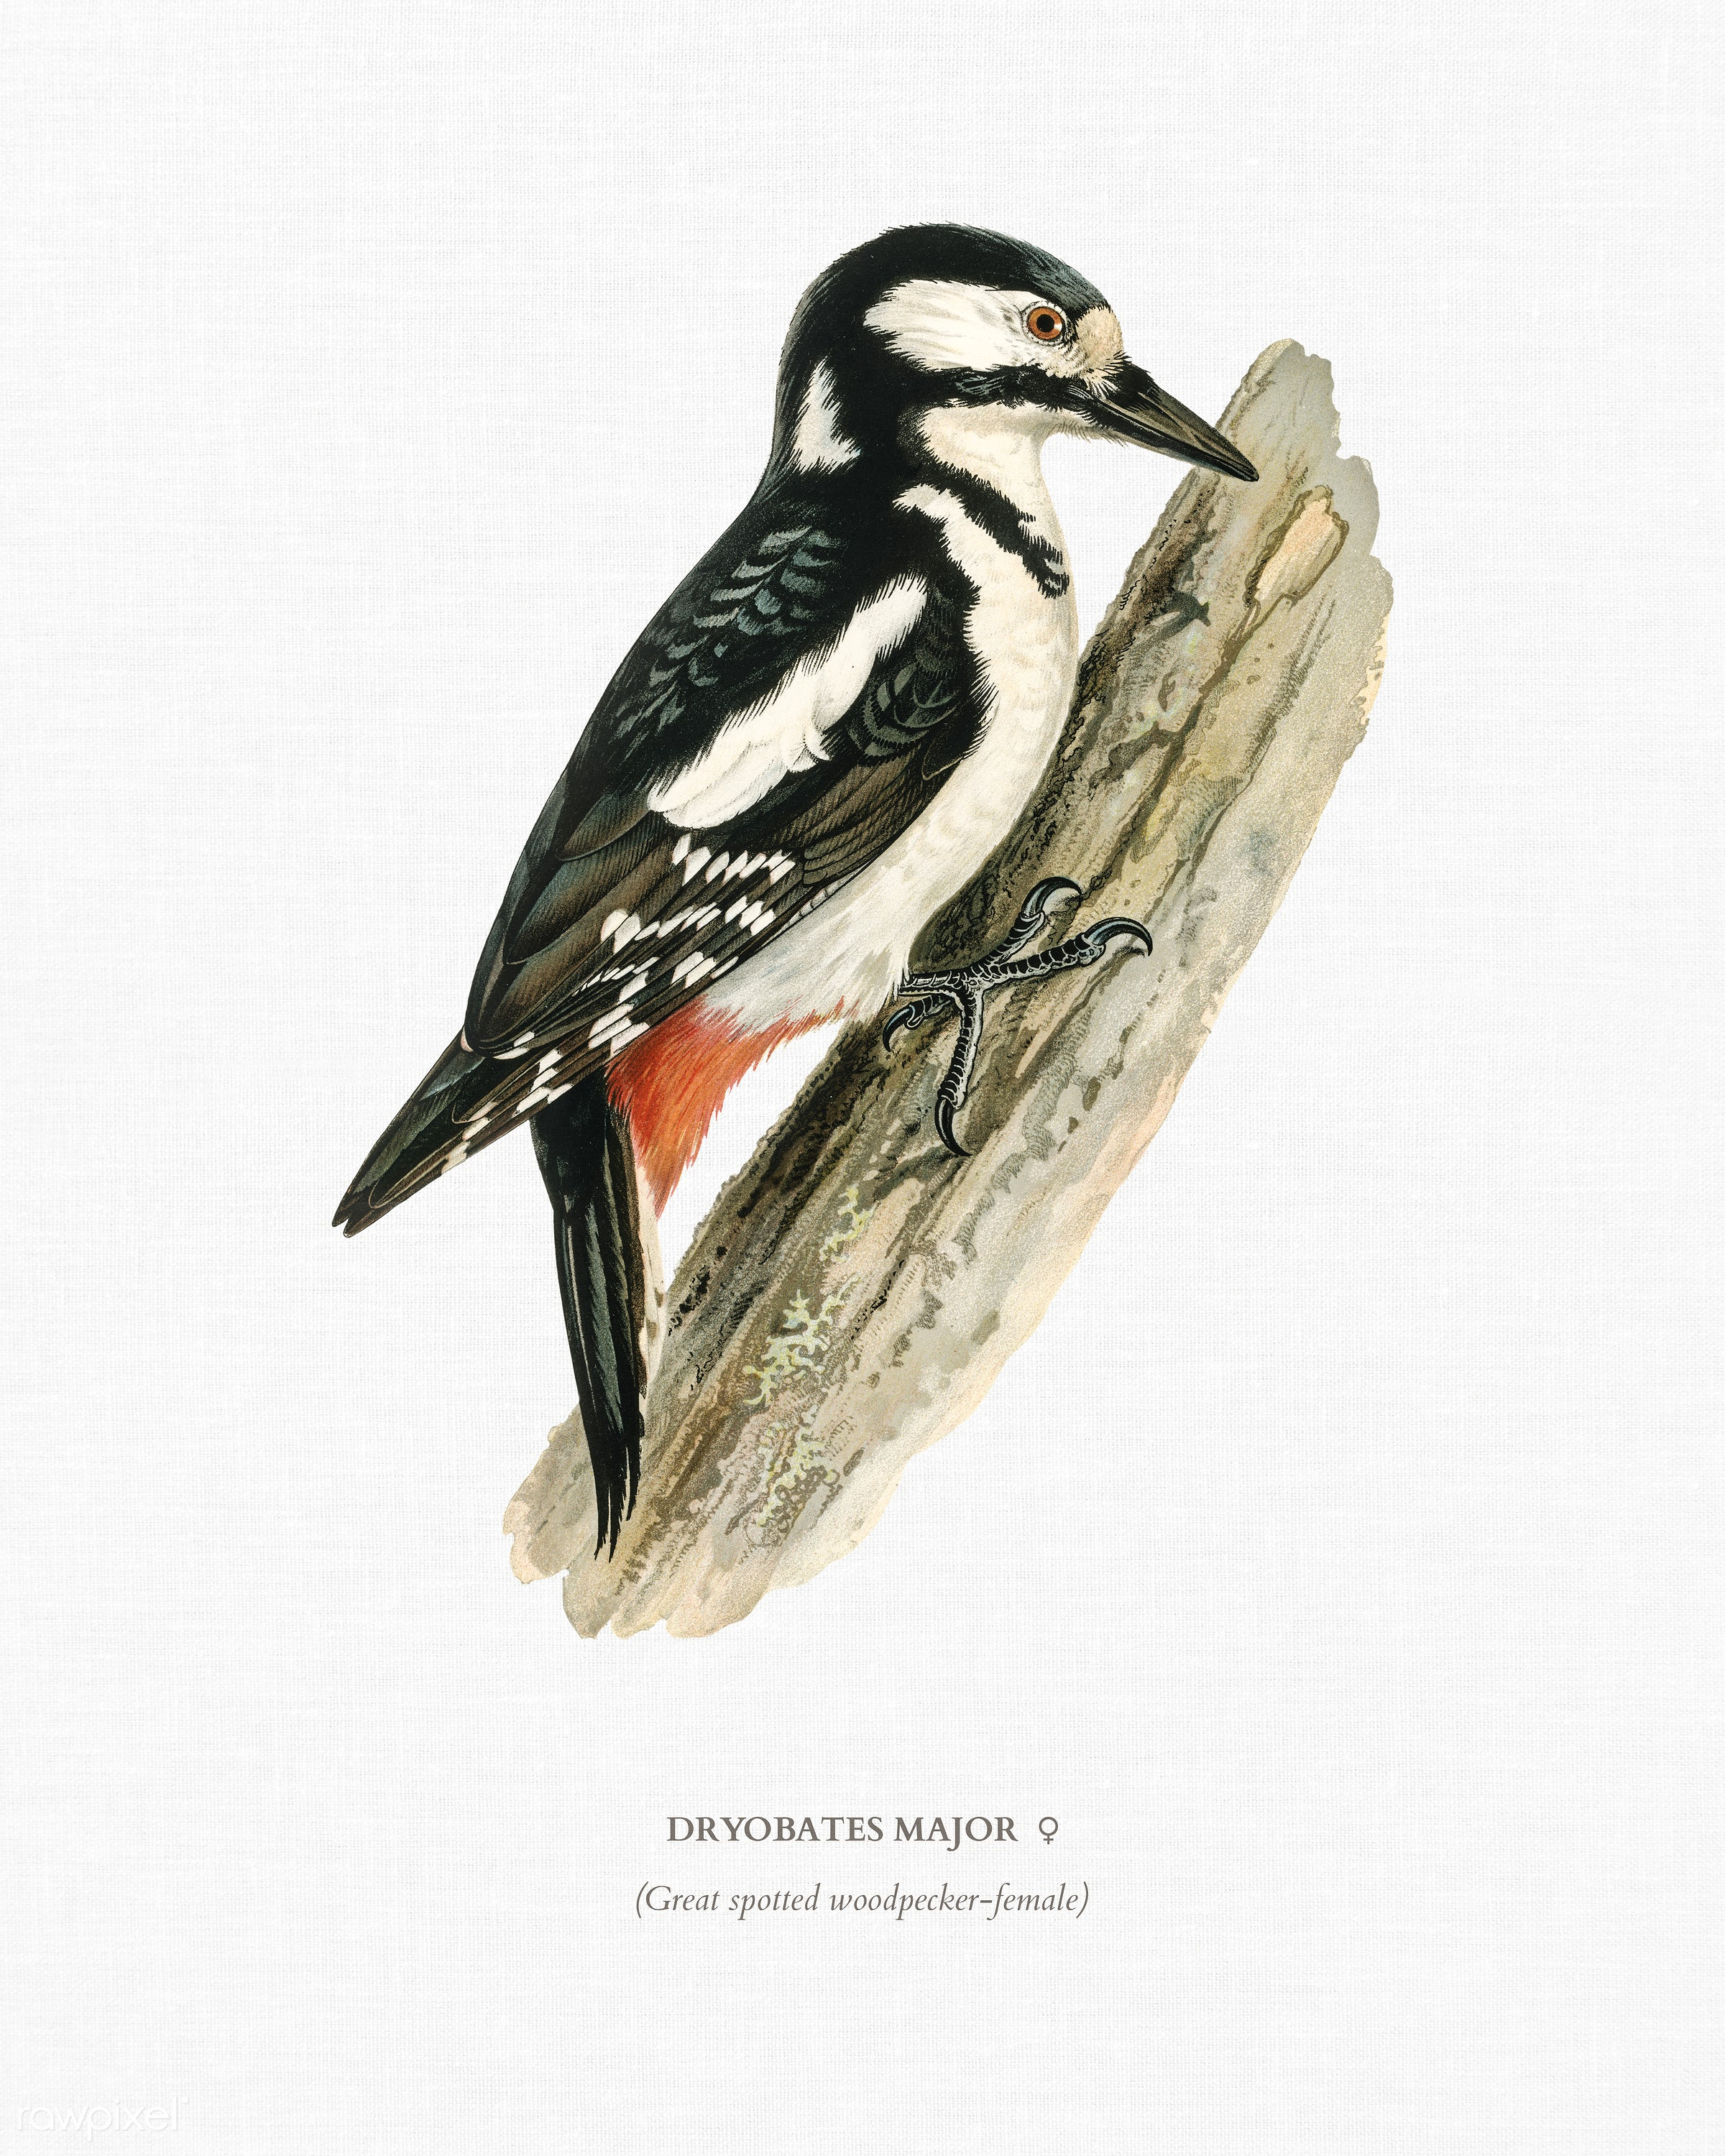 Great spotted woodpecker-female ♀ (Dryobates major) illustrated by the von Wright brothers. Digitally enhanced from our own...